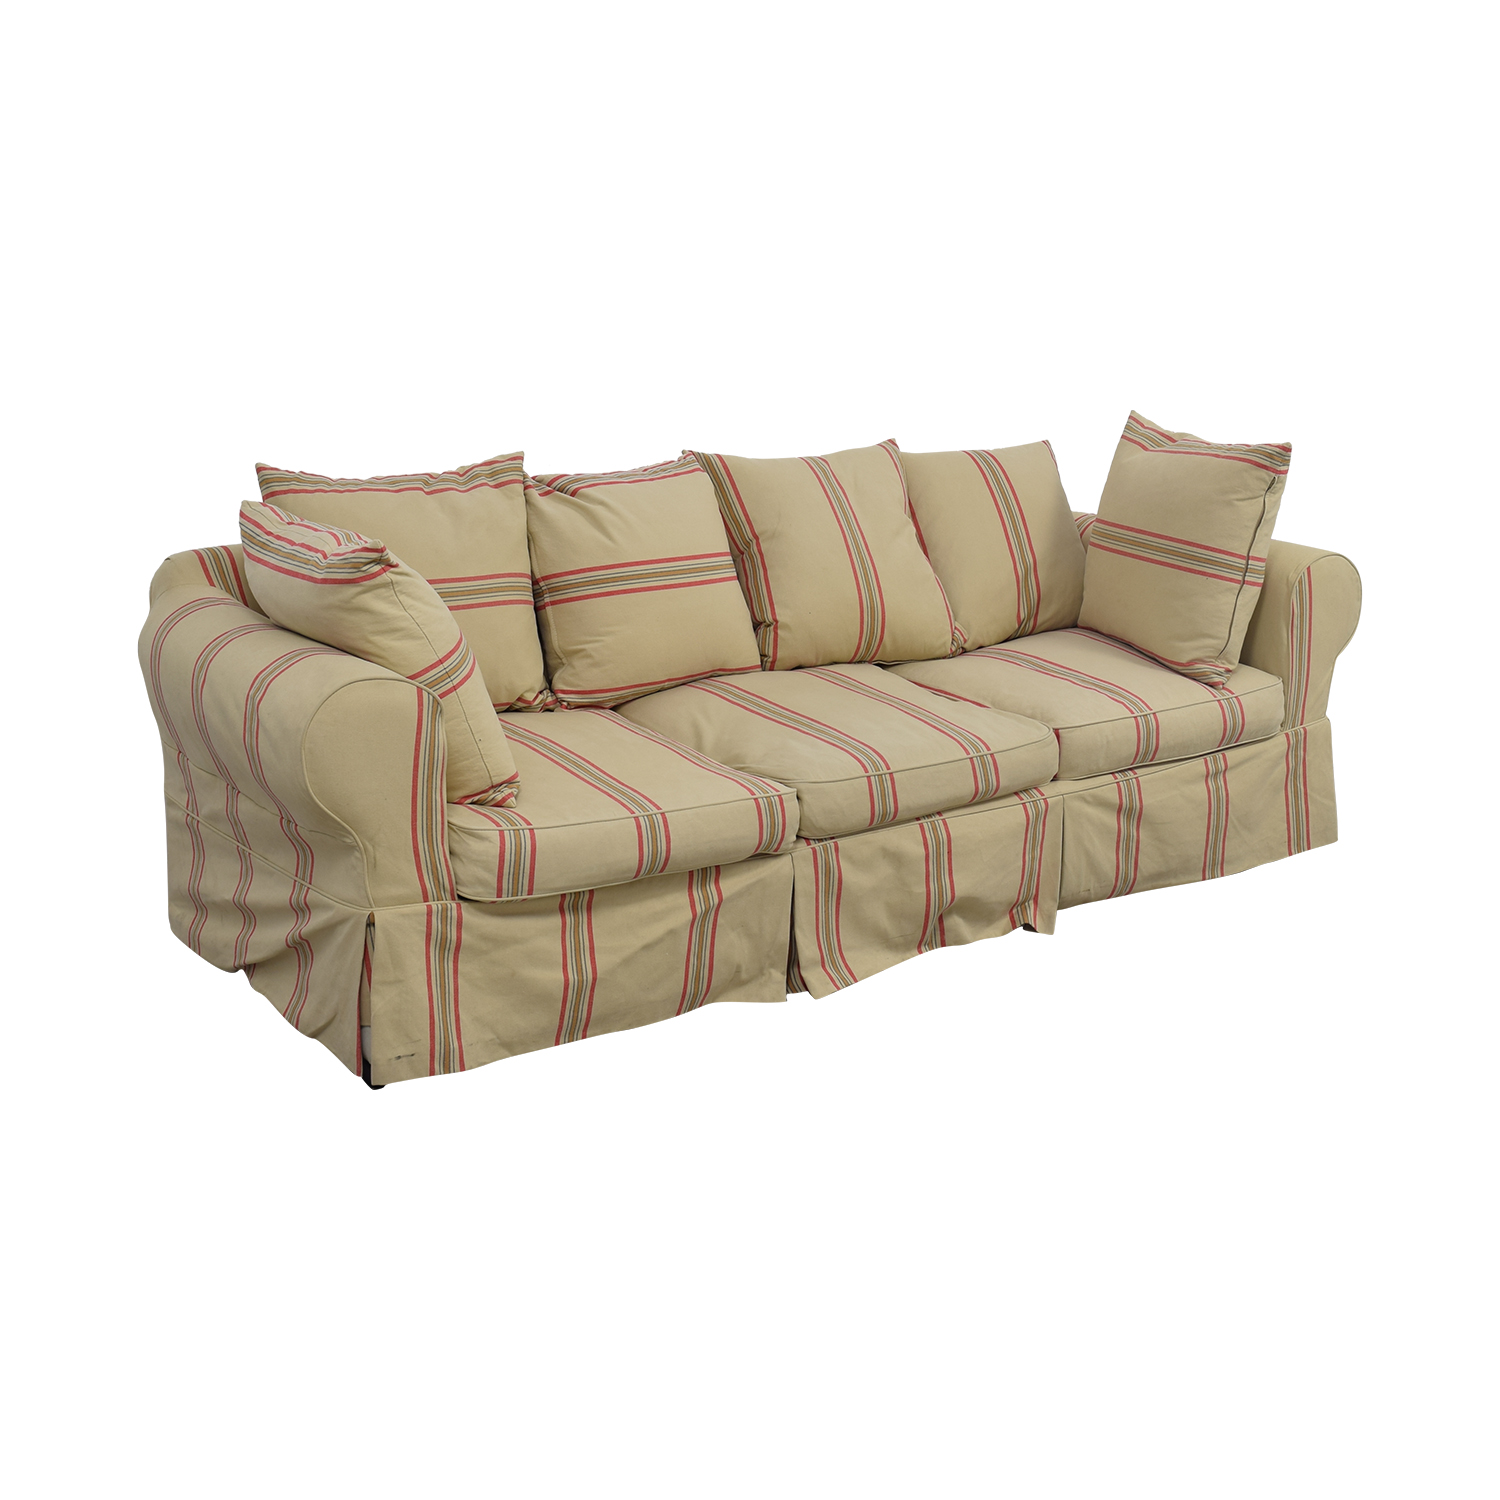 90 Off Beige With Red Stripe Three Cushion Slipcover